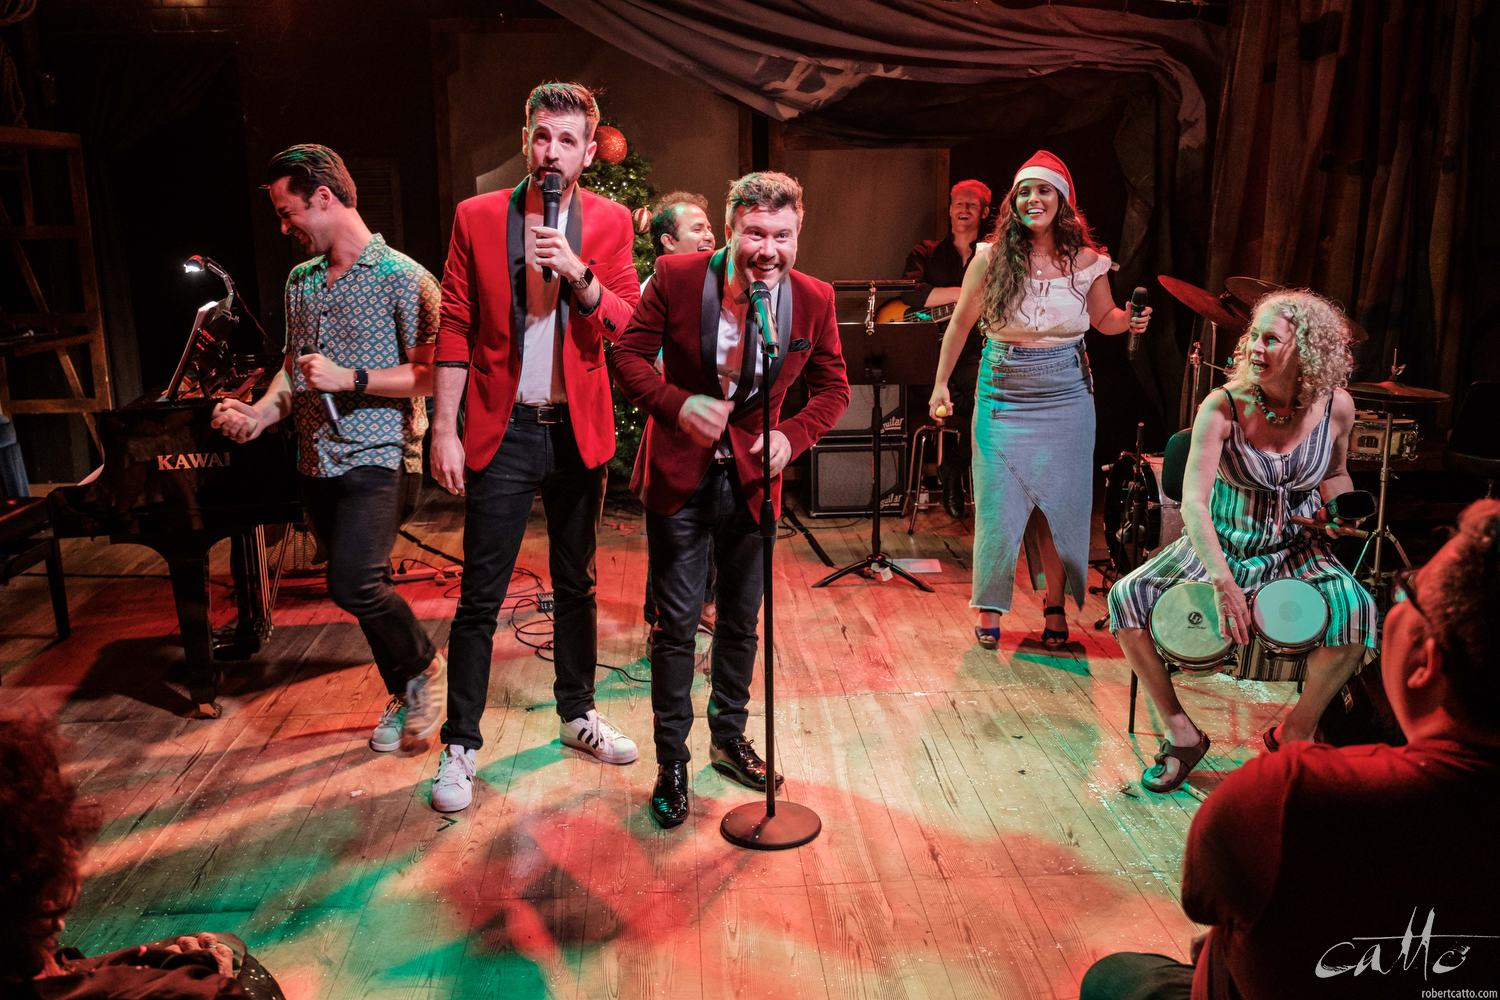 Hosts Toby Francis and Dash Kruck join the cast of In The Heights at the end of Feliz Navidad.